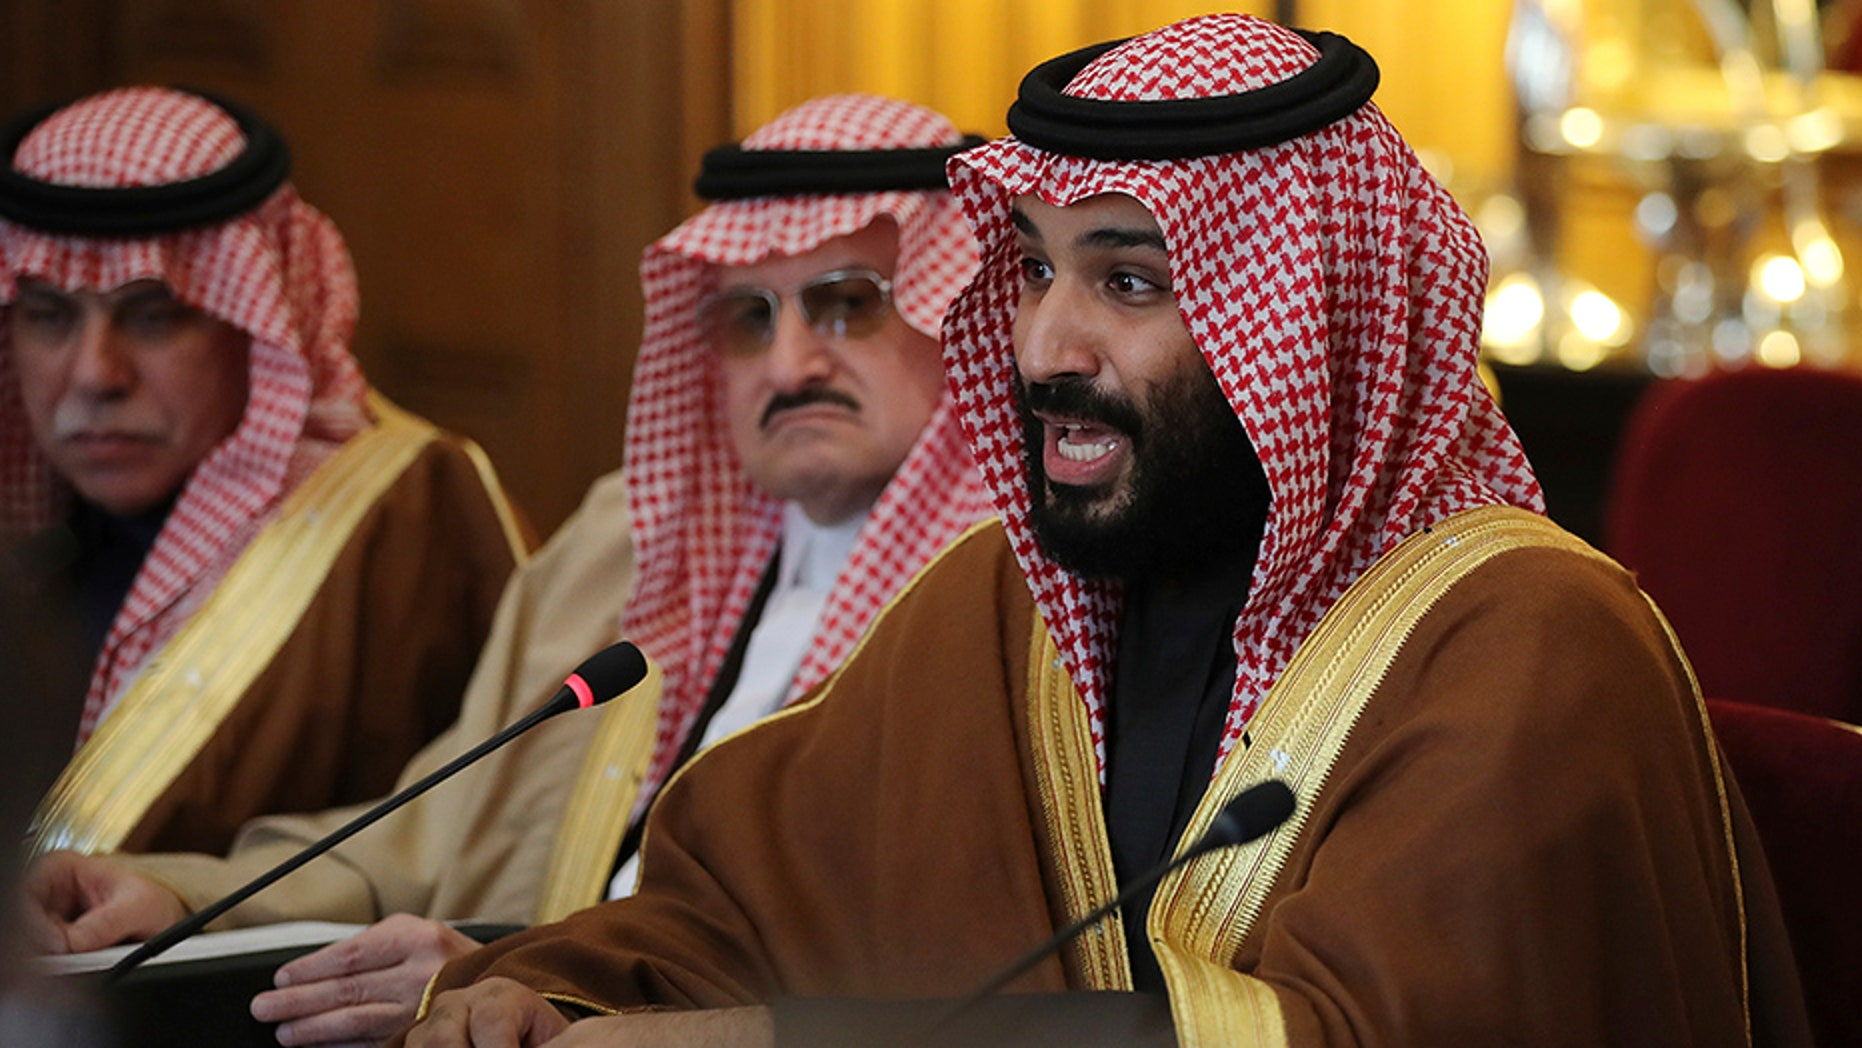 Saudi Crown Prince Mohammed bin Salman warns that his country will arm themselves with nuclear weapons if Iran develop a bomb.